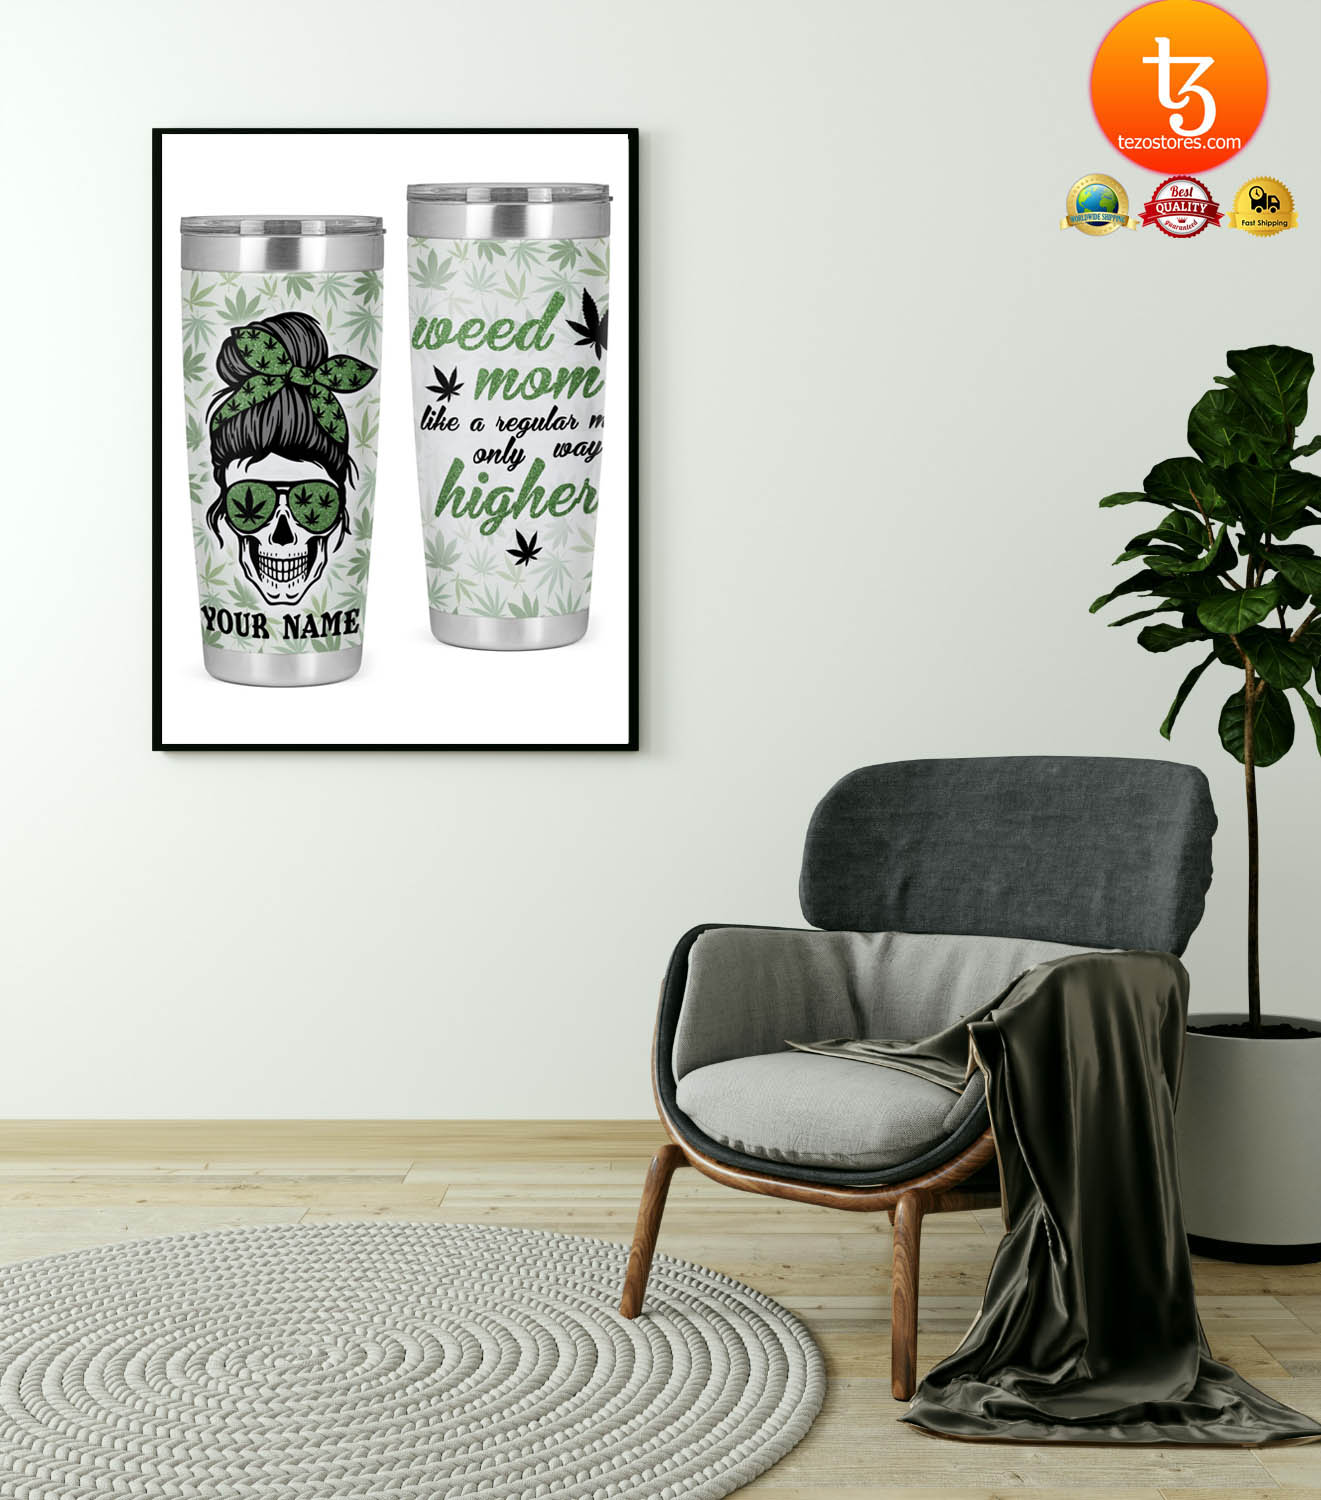 Weed mom like a regular mom only way higher custom name tumbler 17